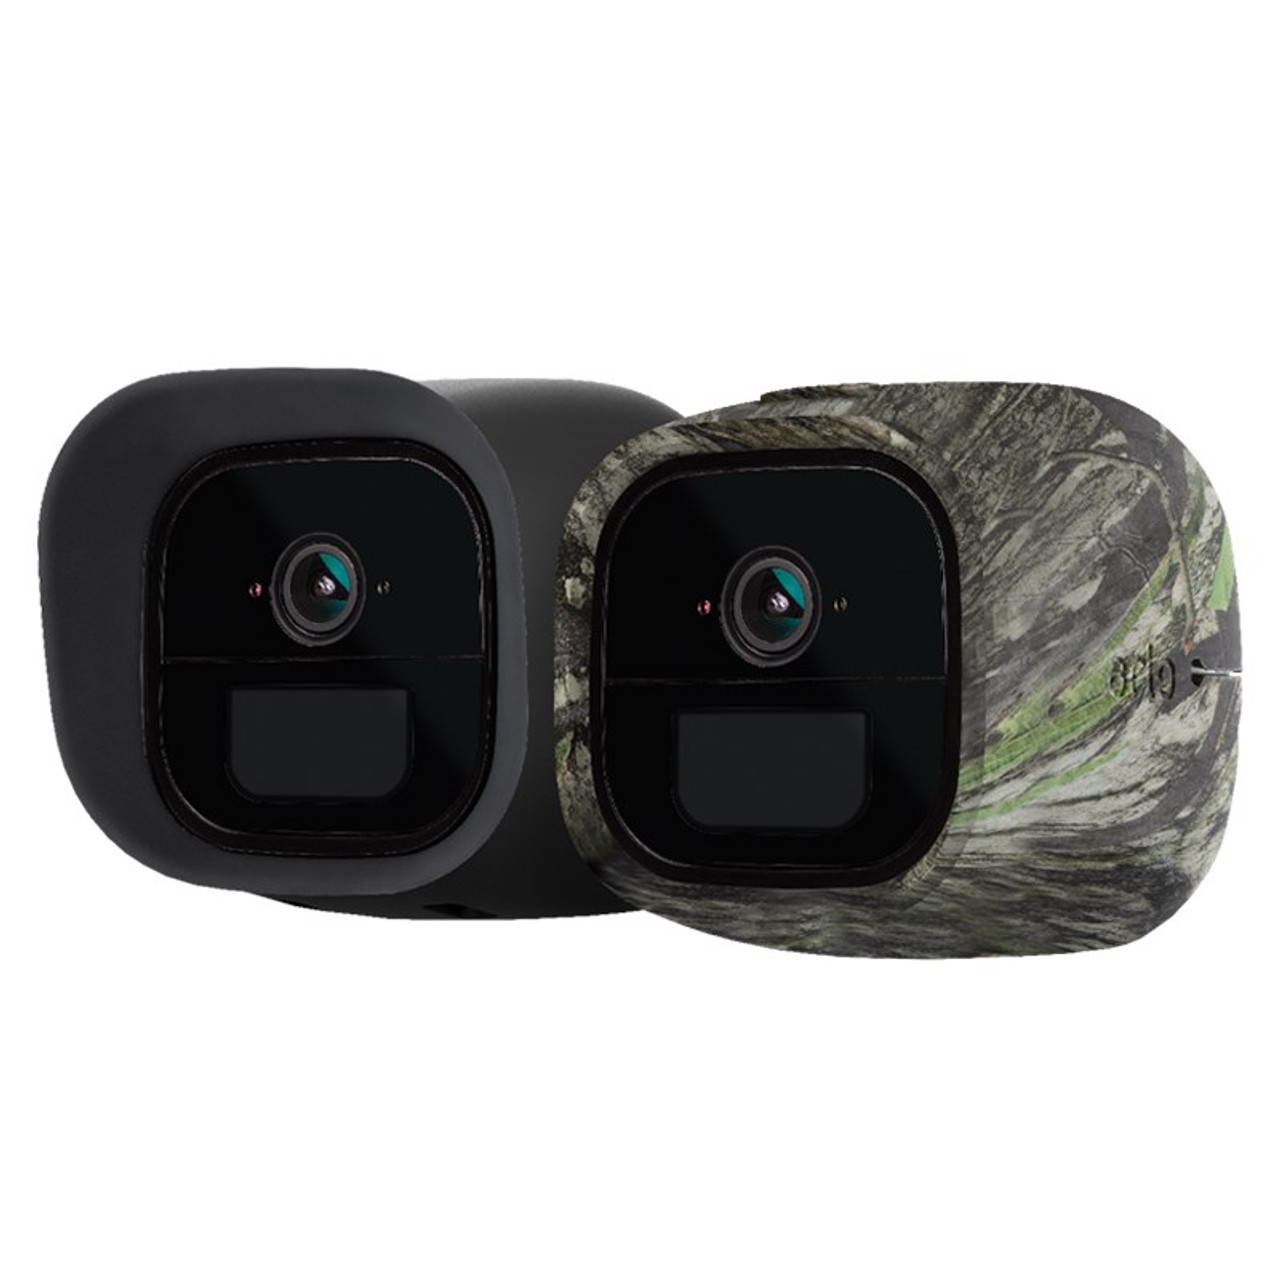 Image for Arlo Go Security Black & Camouflage Camera Skin Combo CX Computer Superstore